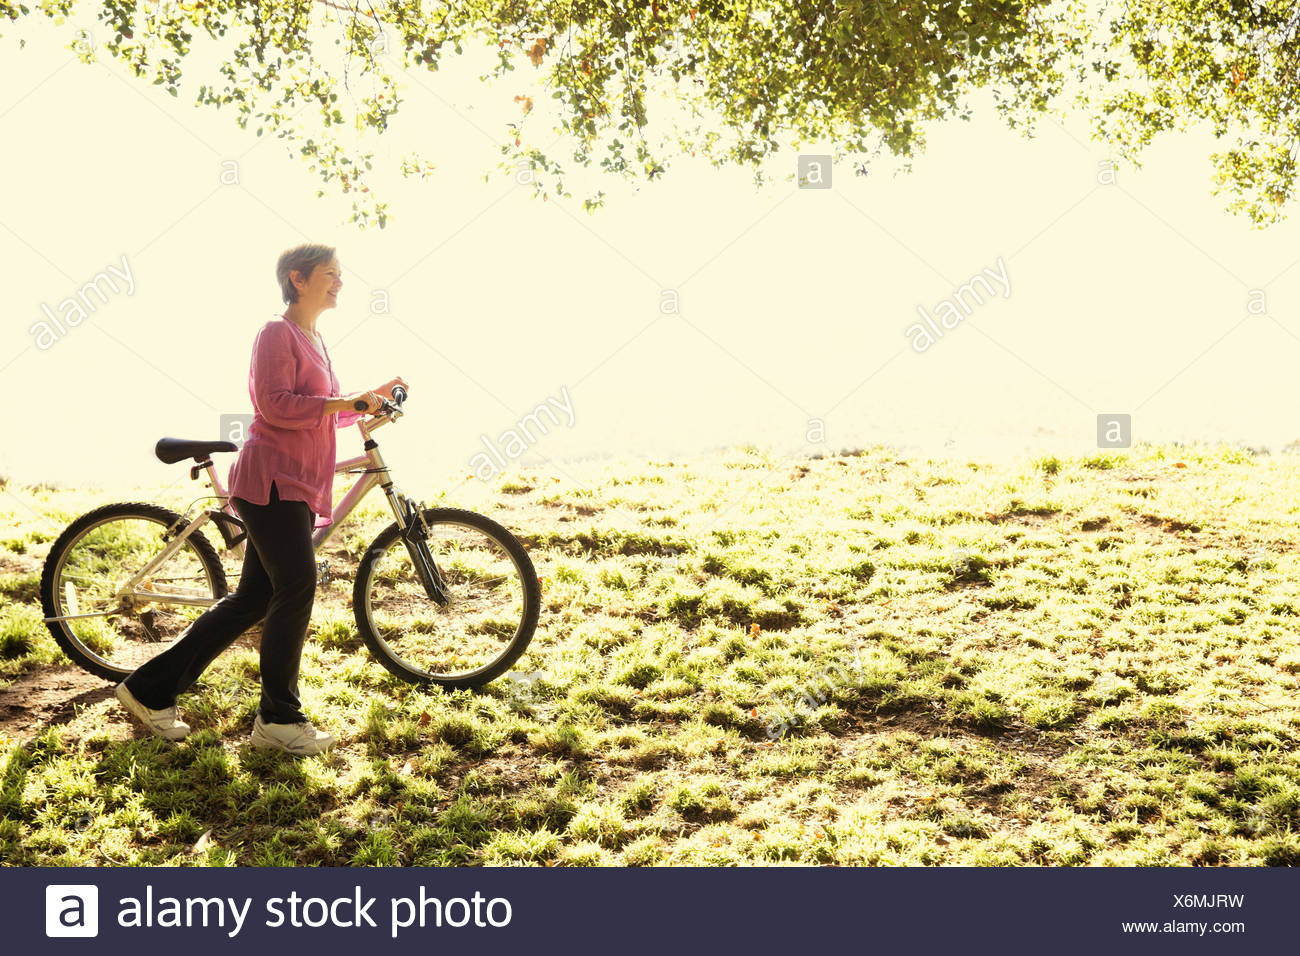 Mature woman pushing bicycle in park - Stock Image